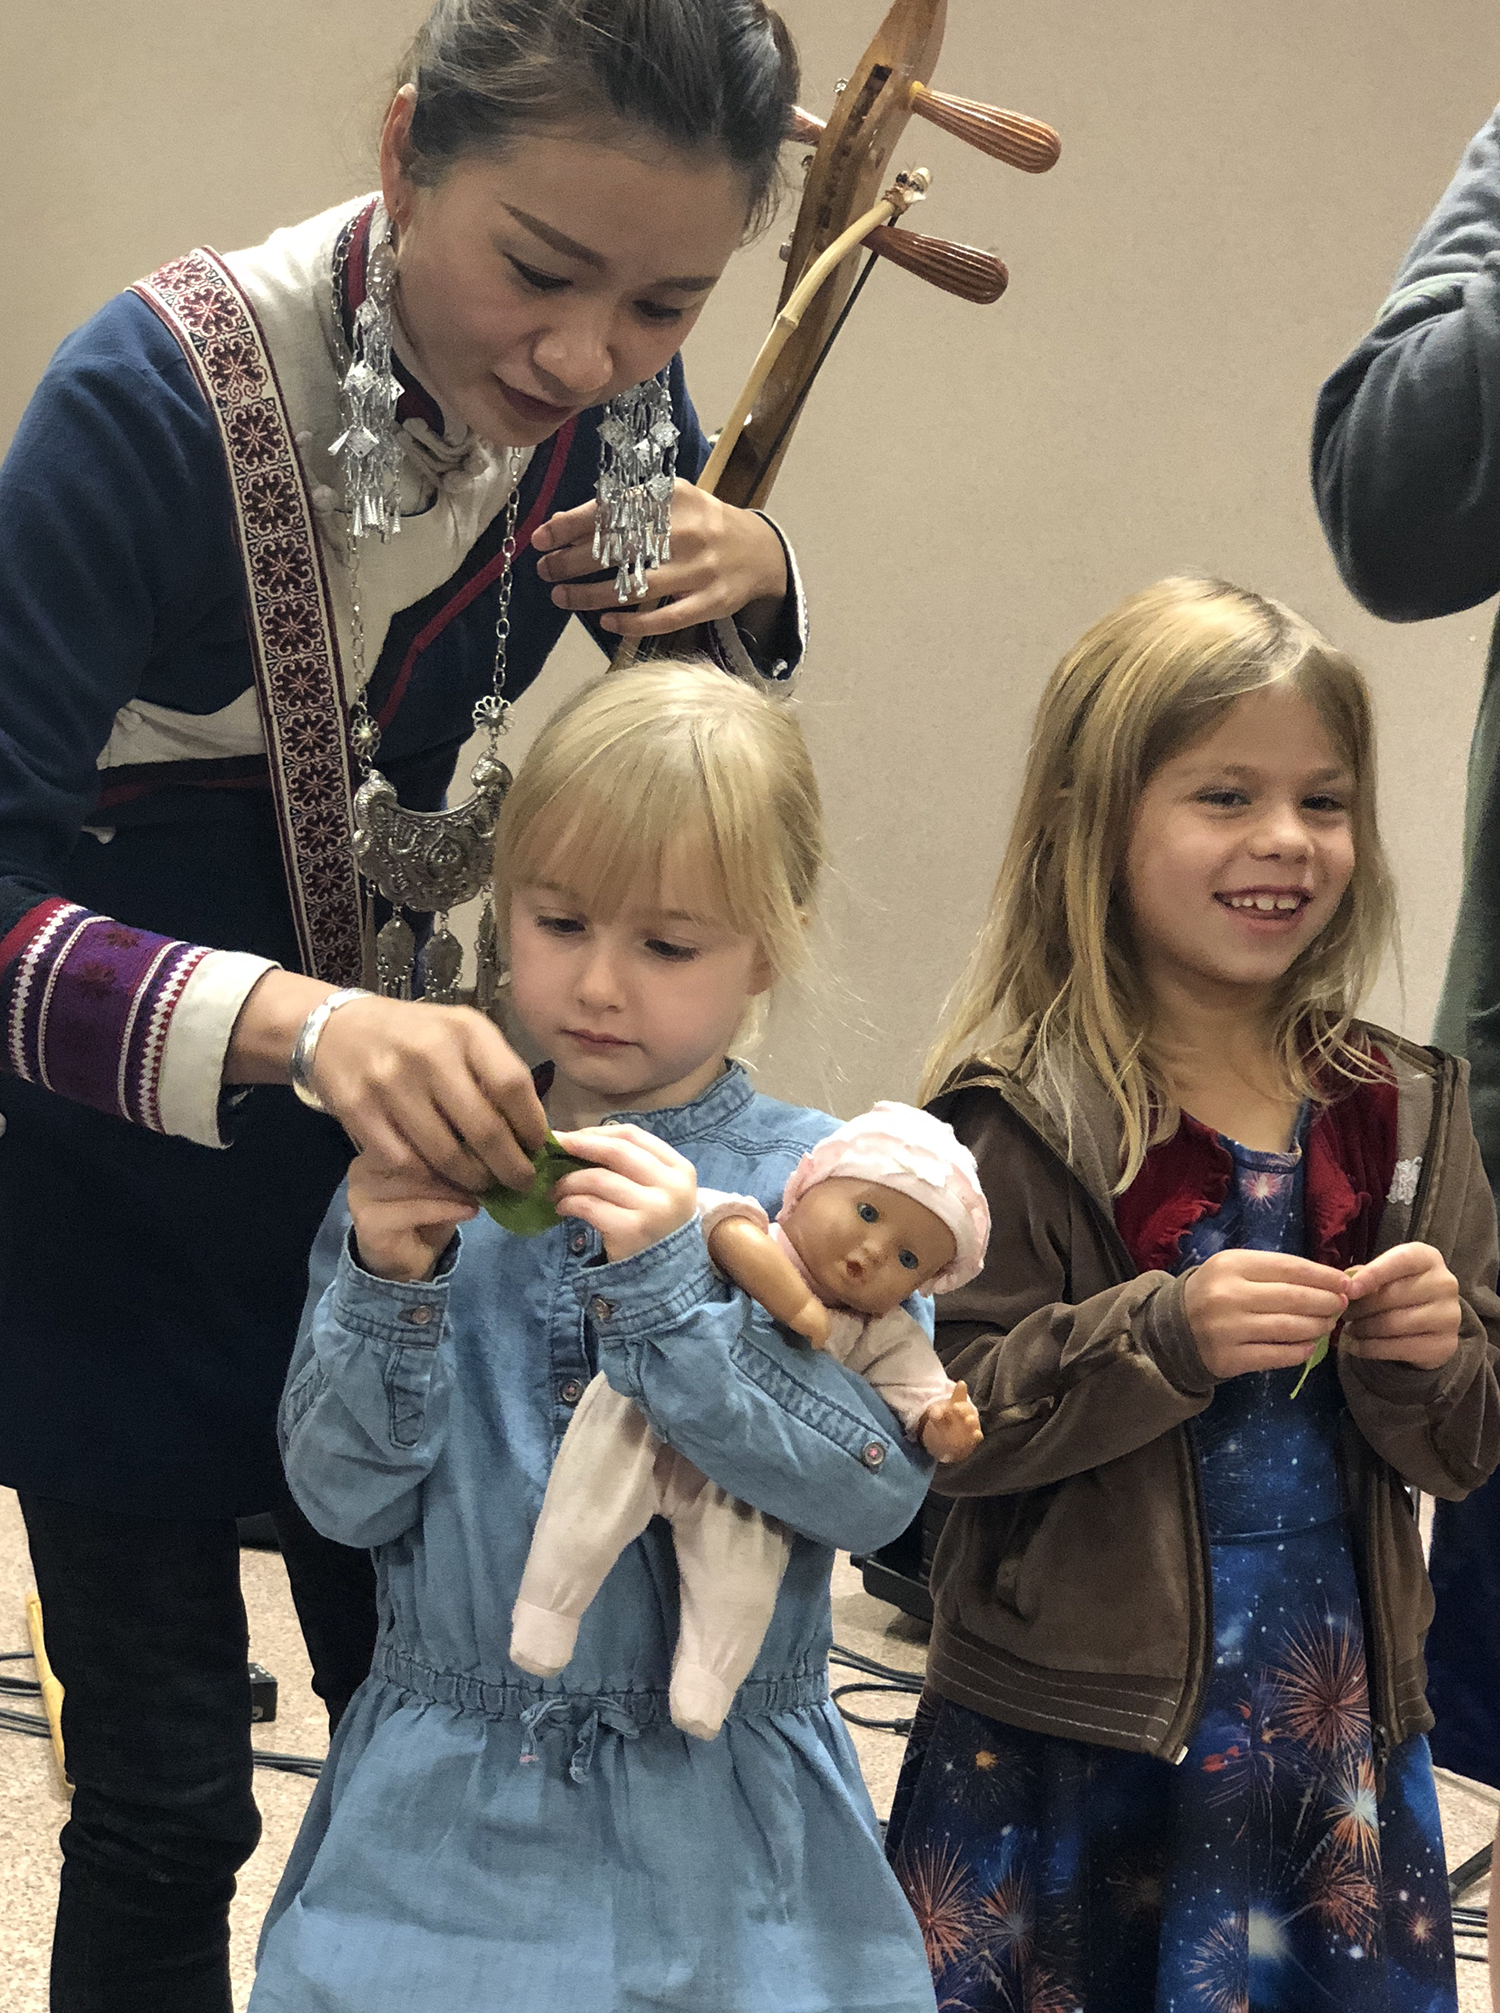 Home school children came to attend the workshop. 4 year old girl with her doll in her arm tried to play the leaf. Alan gently showed her how to hold the leaf.